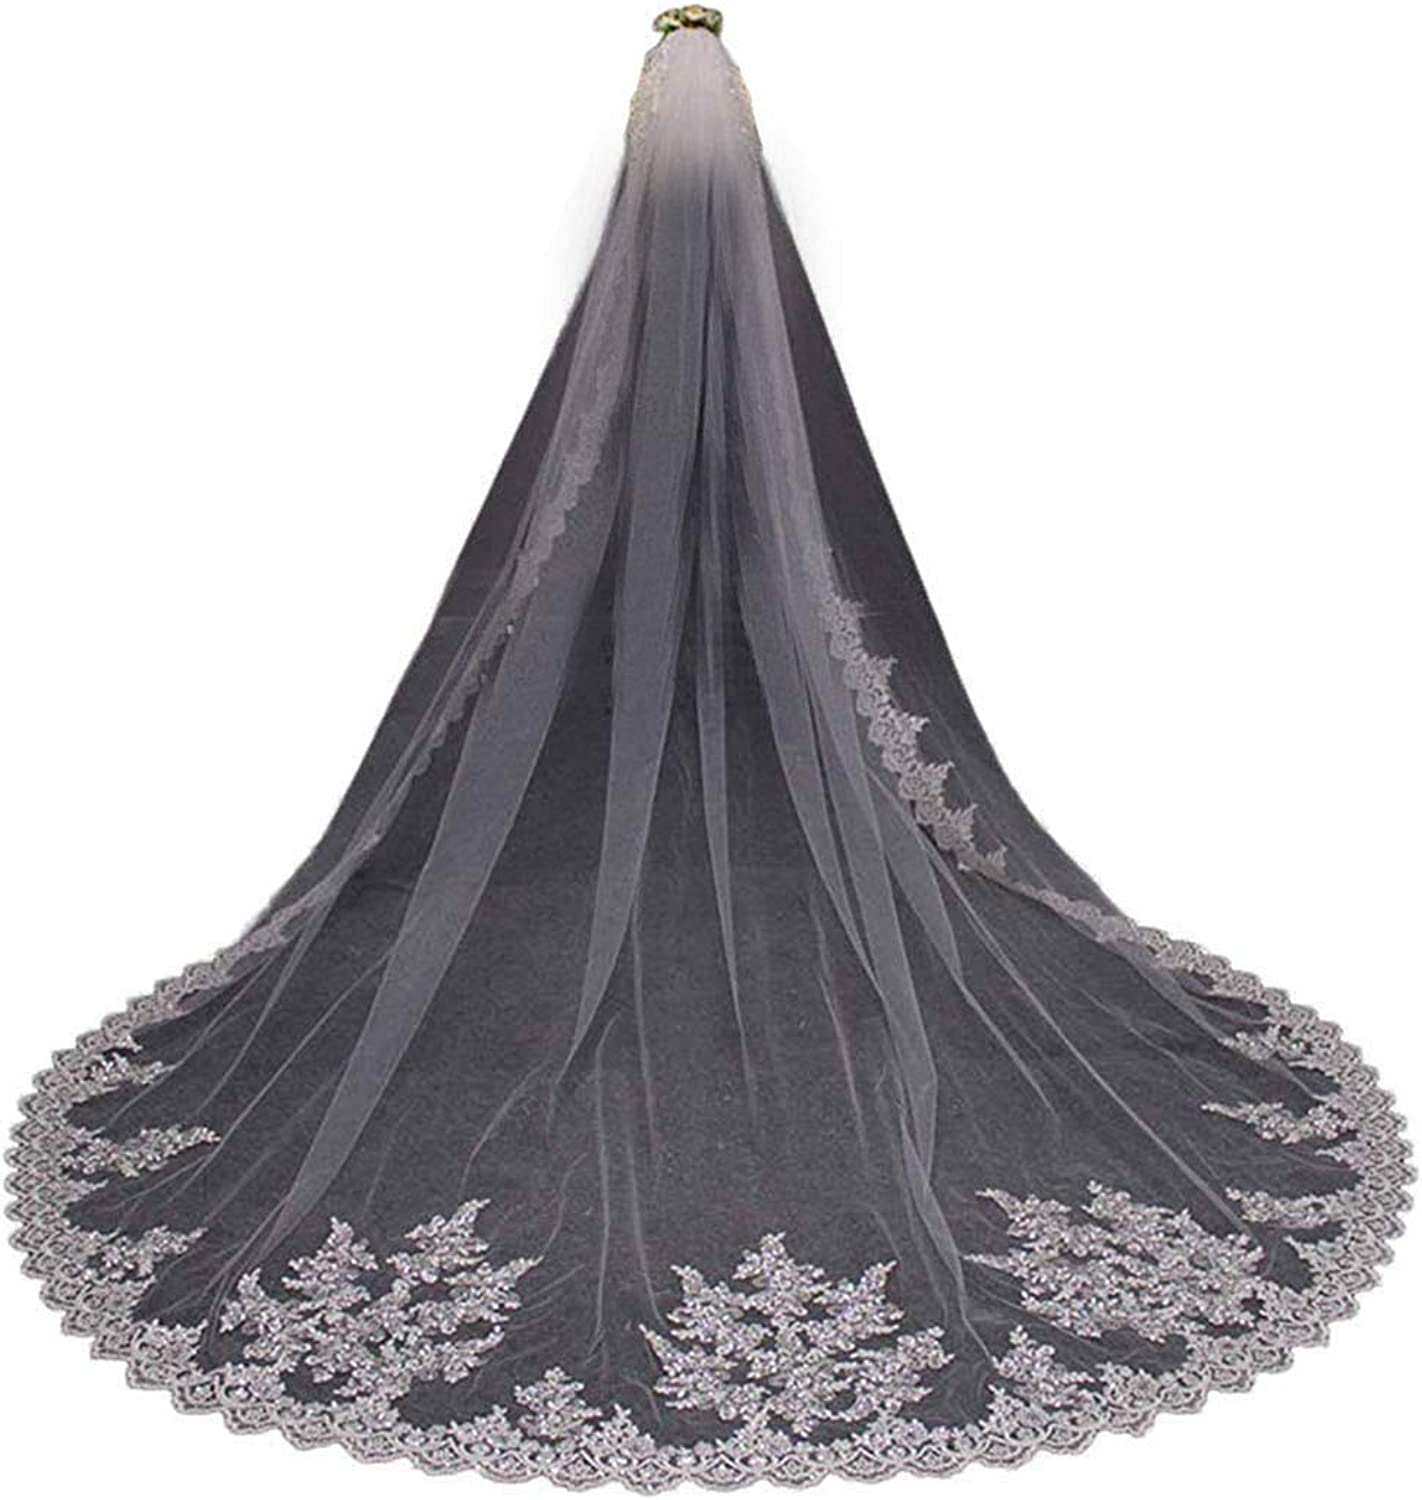 Fenghuavip Cathedral Veil 1T Lace Sequins Wedding Veil Ivory for Bride with Comb